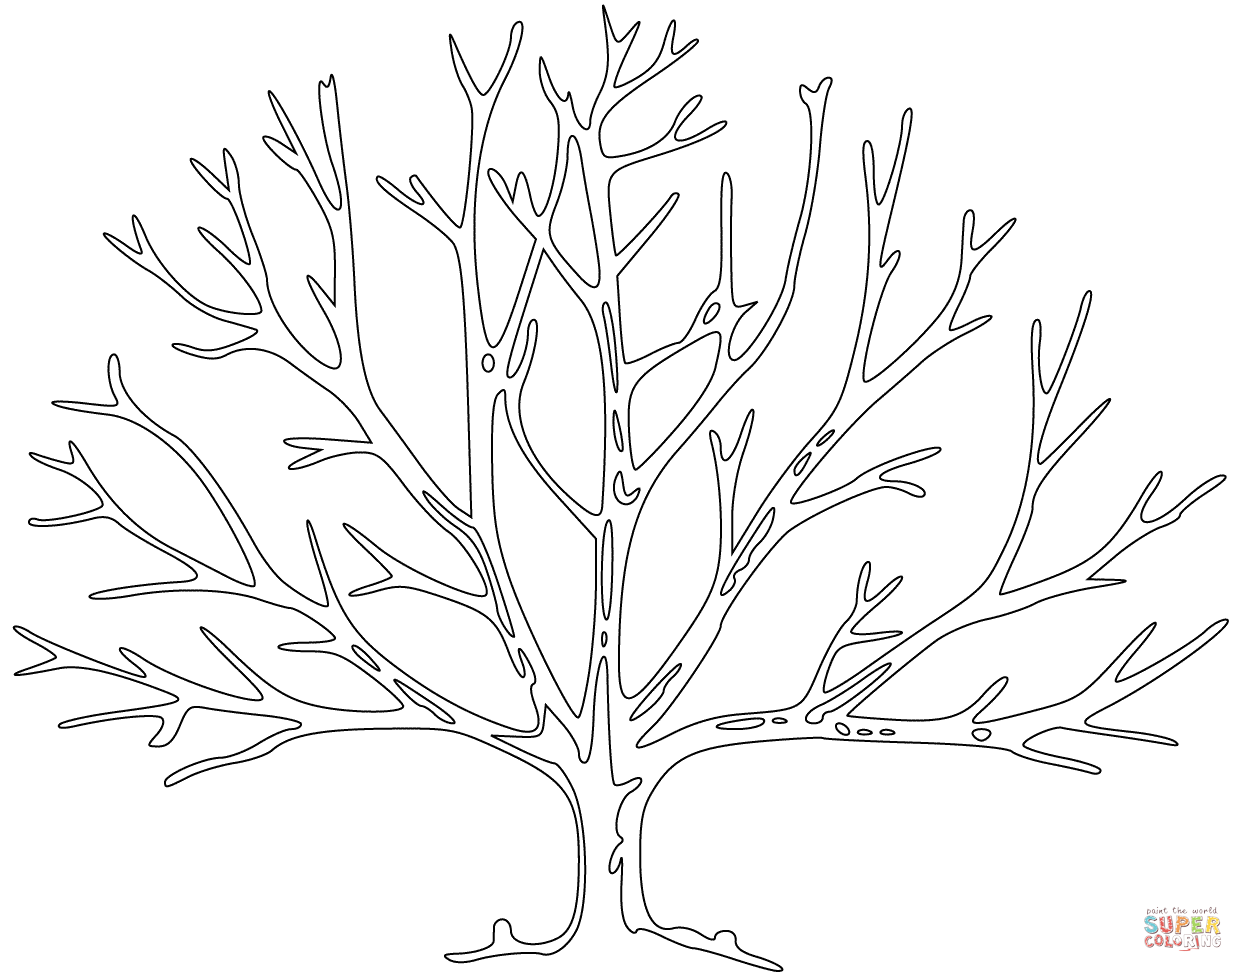 Bare Tree Coloring Page From Trees Leaves Category Select From 27237 Printable Crafts Of Cartoons Nature A Tree Coloring Page Tree Drawing Family Tree Art